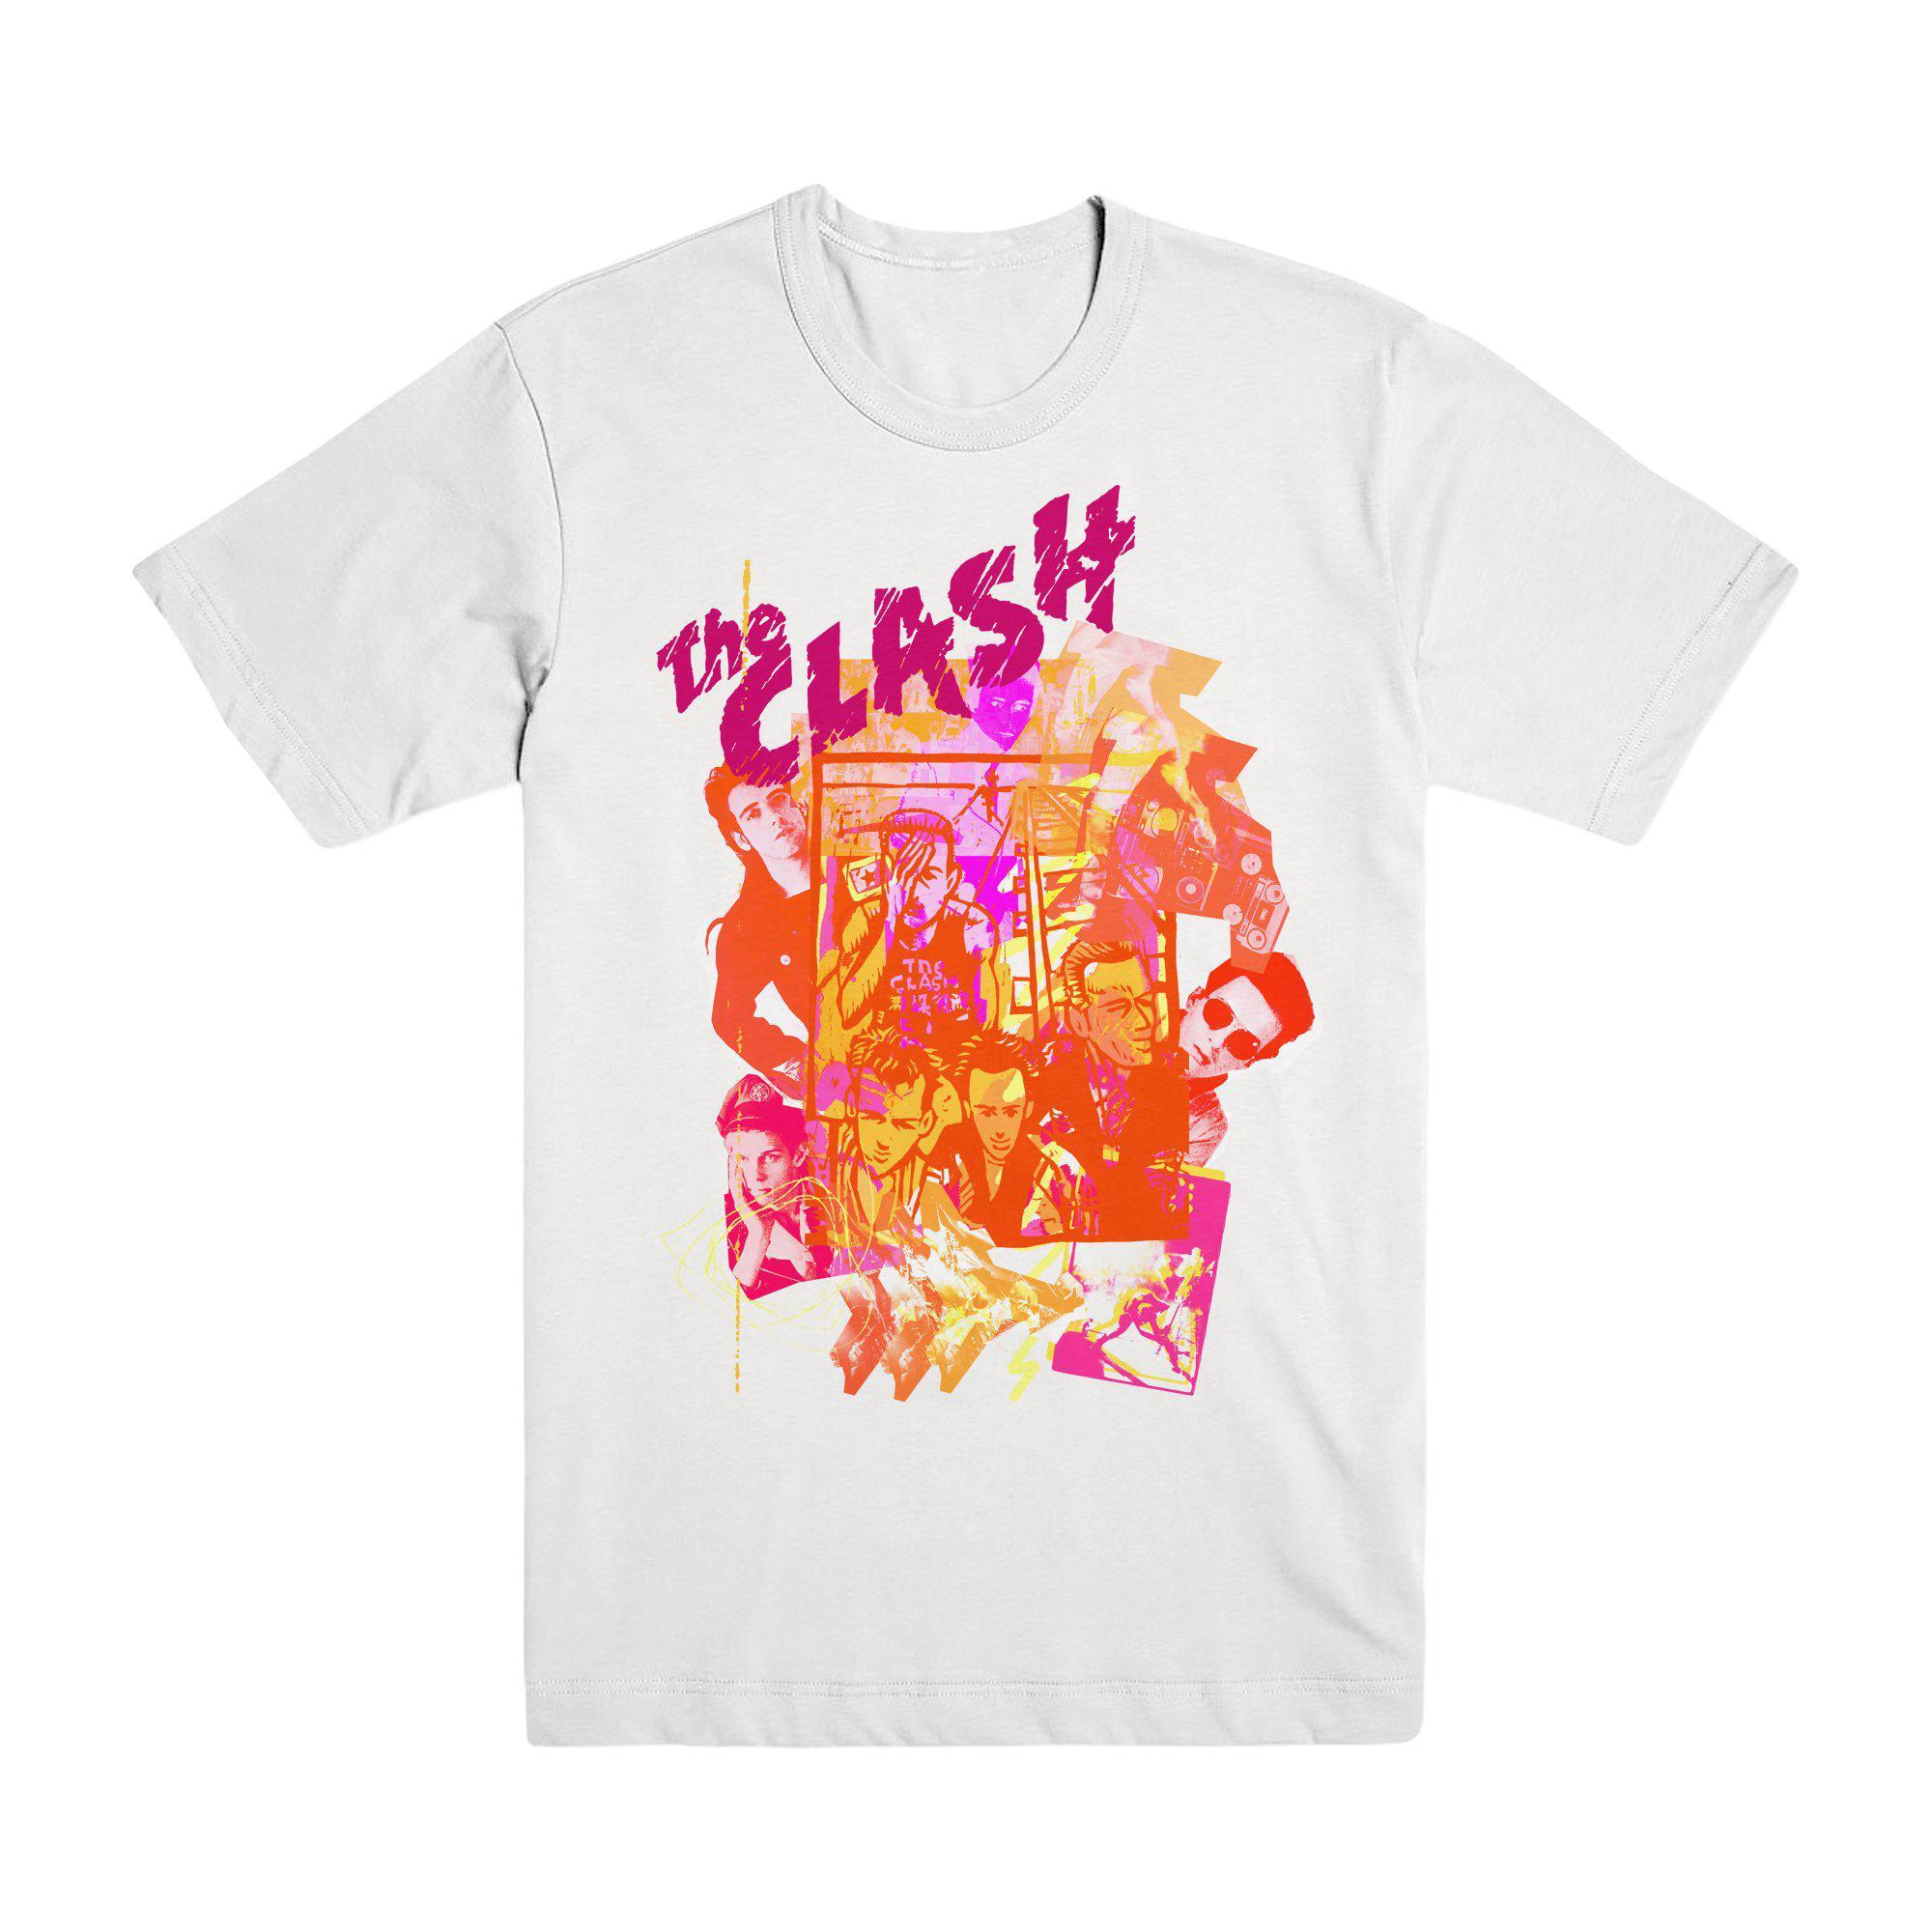 Black Market Clash - Animation White T-Shirt